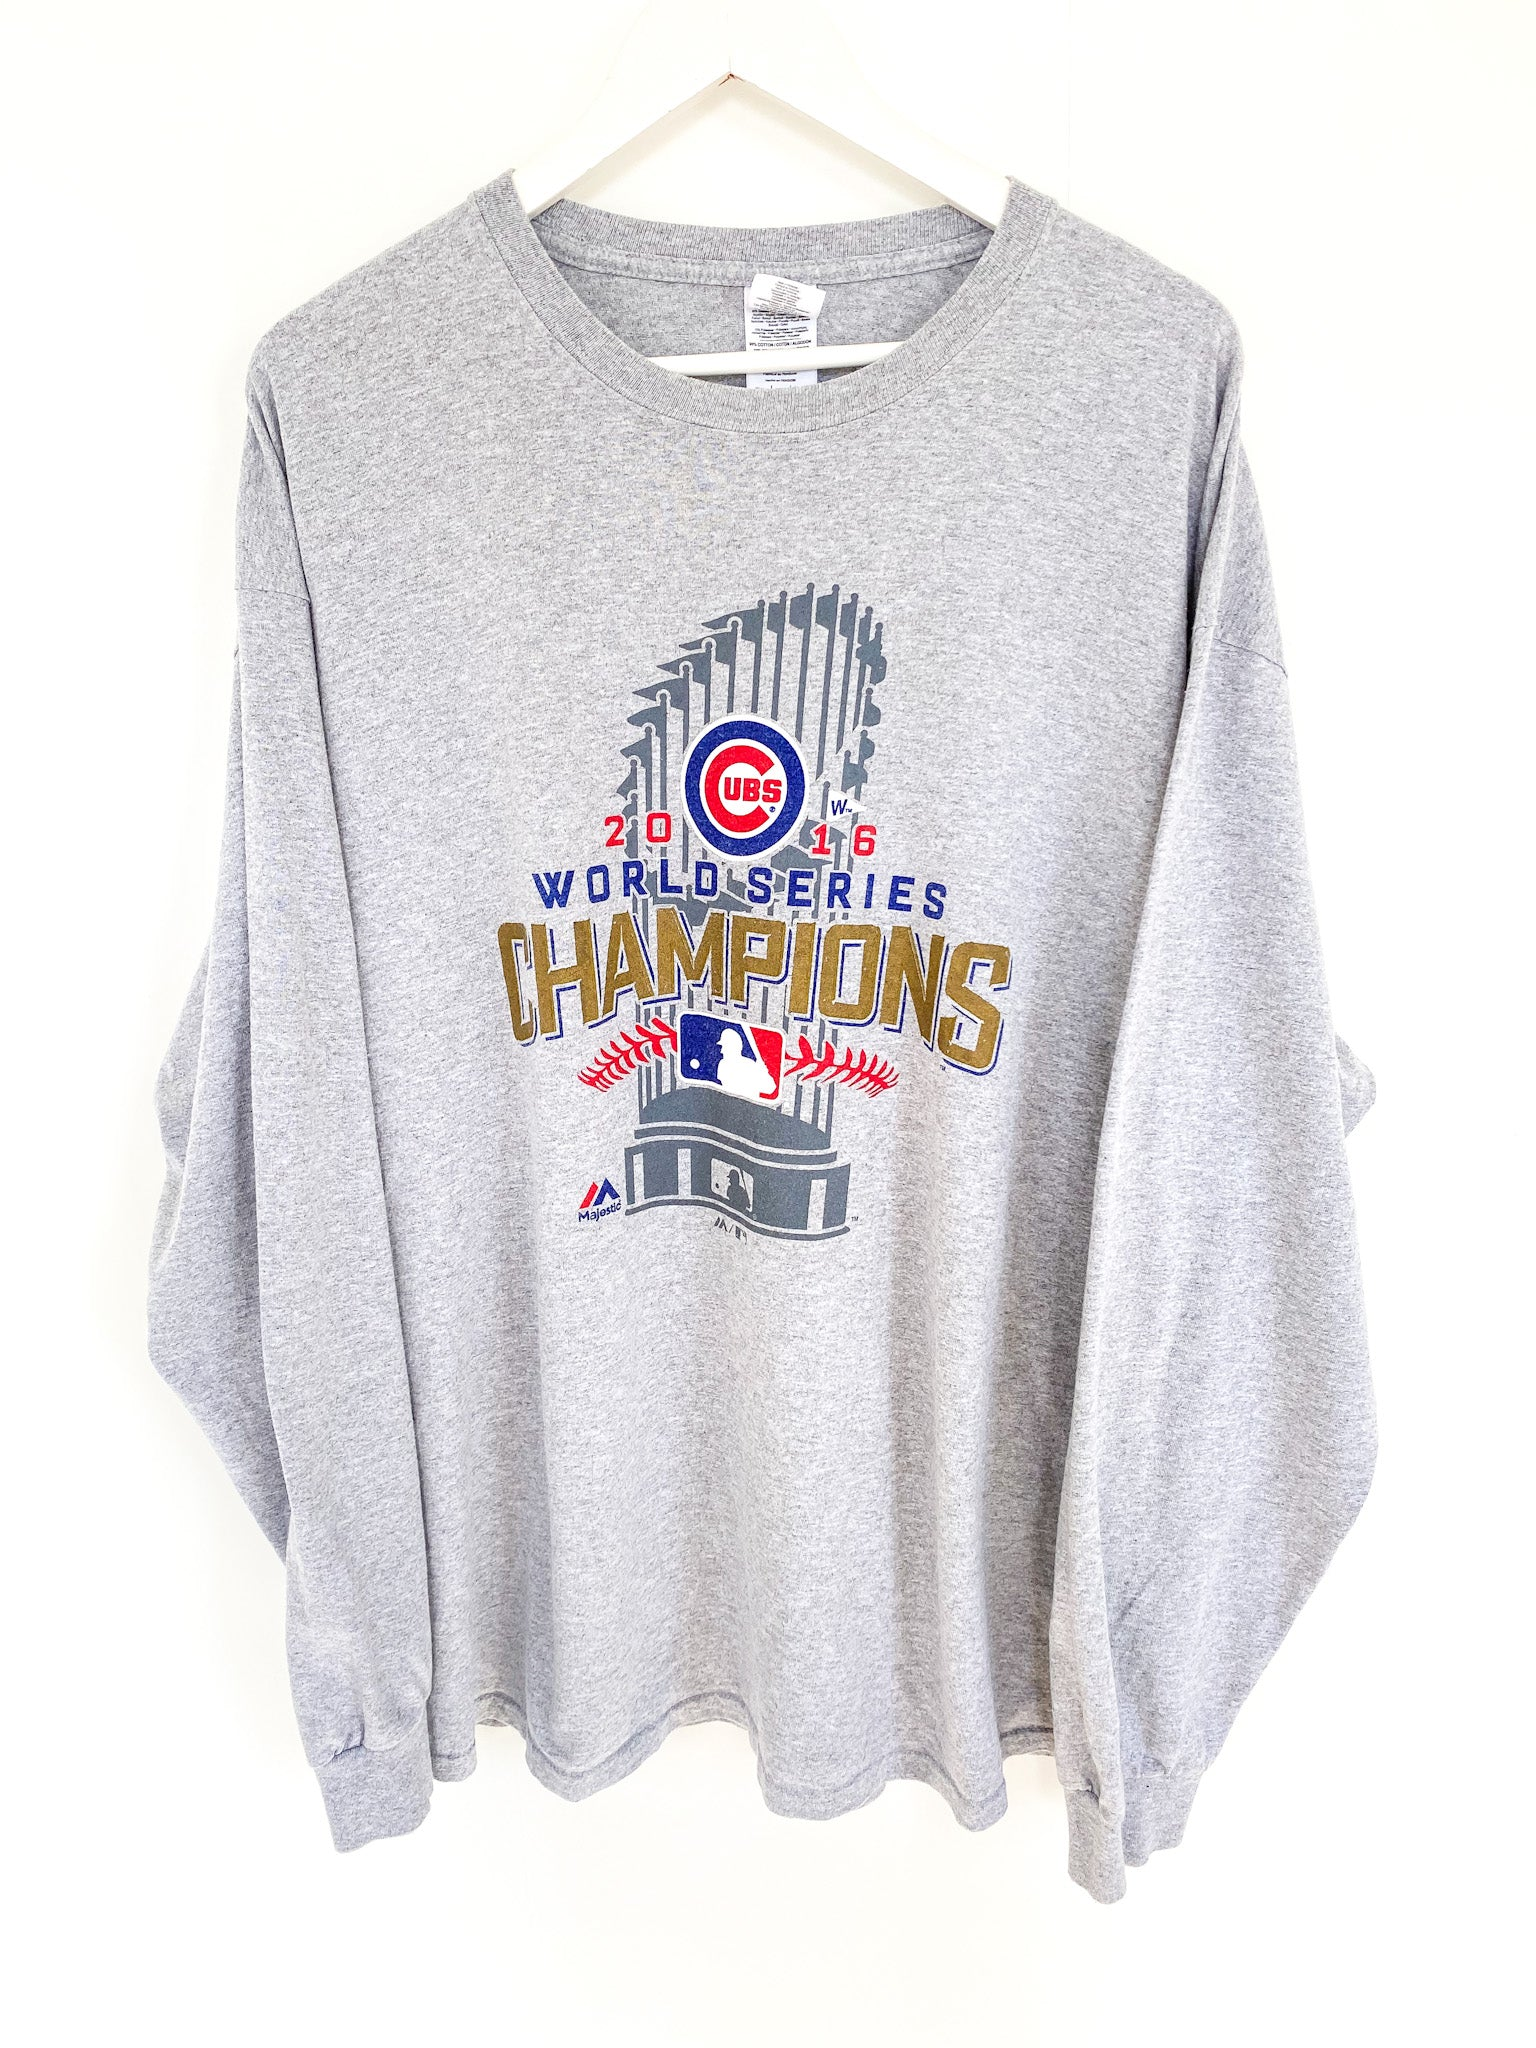 CHICAGO CUBS WORLD SERIES TEE (XL)